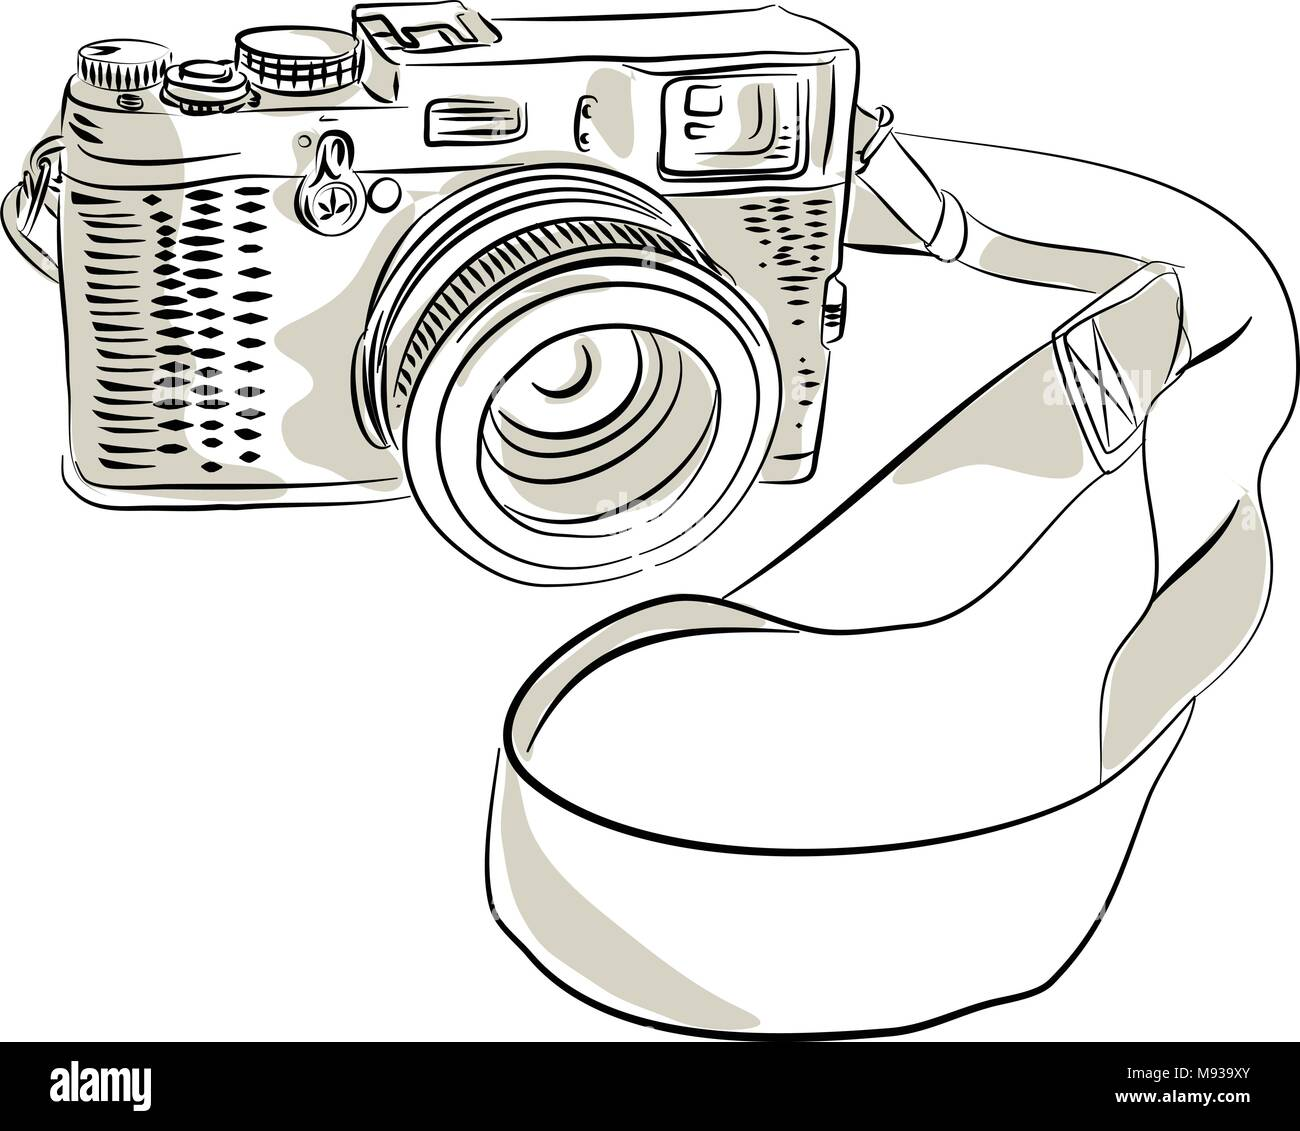 Drawing sketch style illustration of a vintage 35mm SLR  film camera with sling or strap and zoom lens on isolated background. Stock Vector